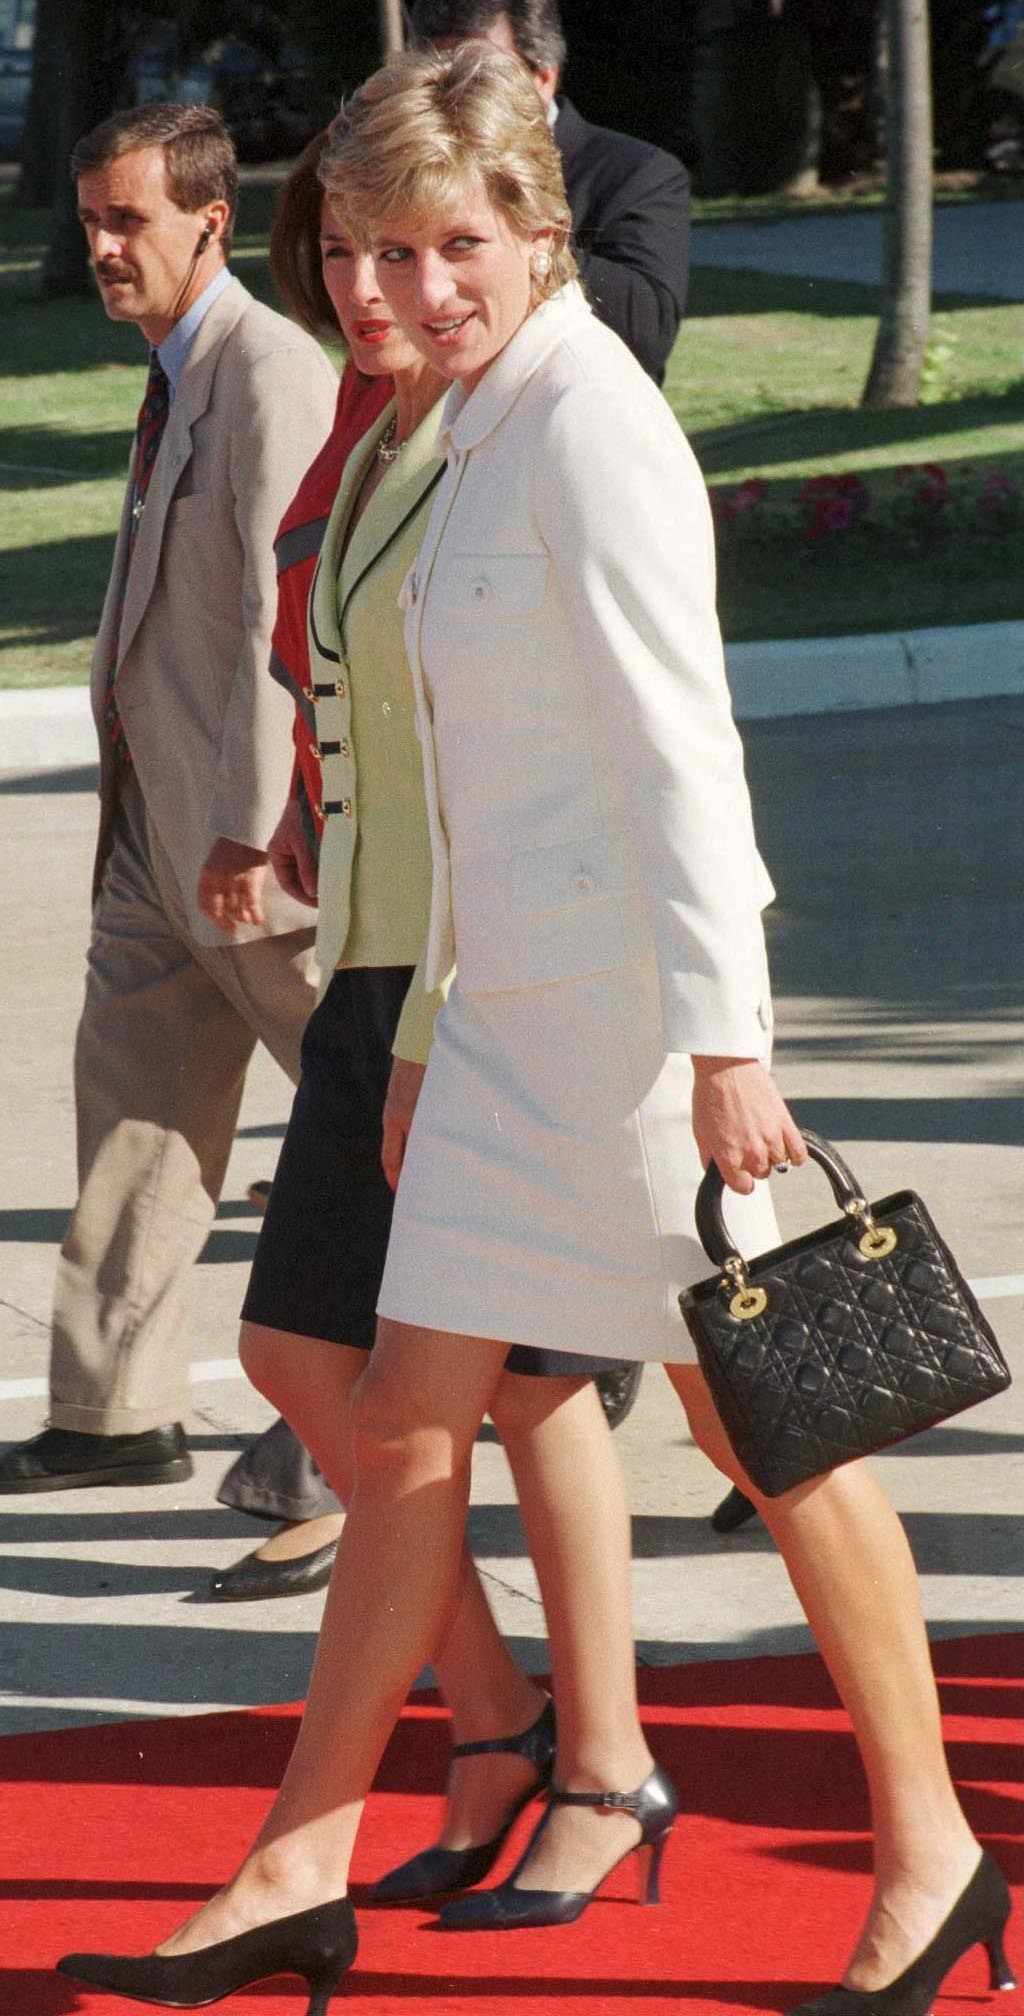 PRINCESS DIANA IN ARGENTINA - 1995  PRINCESS DIANA PRINCESS DIANA IN ARGENTINA - 1995  BRITISH, Image: 221342068, License: Rights-managed, Restrictions: , Model Release: no, Credit line: Times Newspapers Lt / Shutterstock Editorial / Profimedia